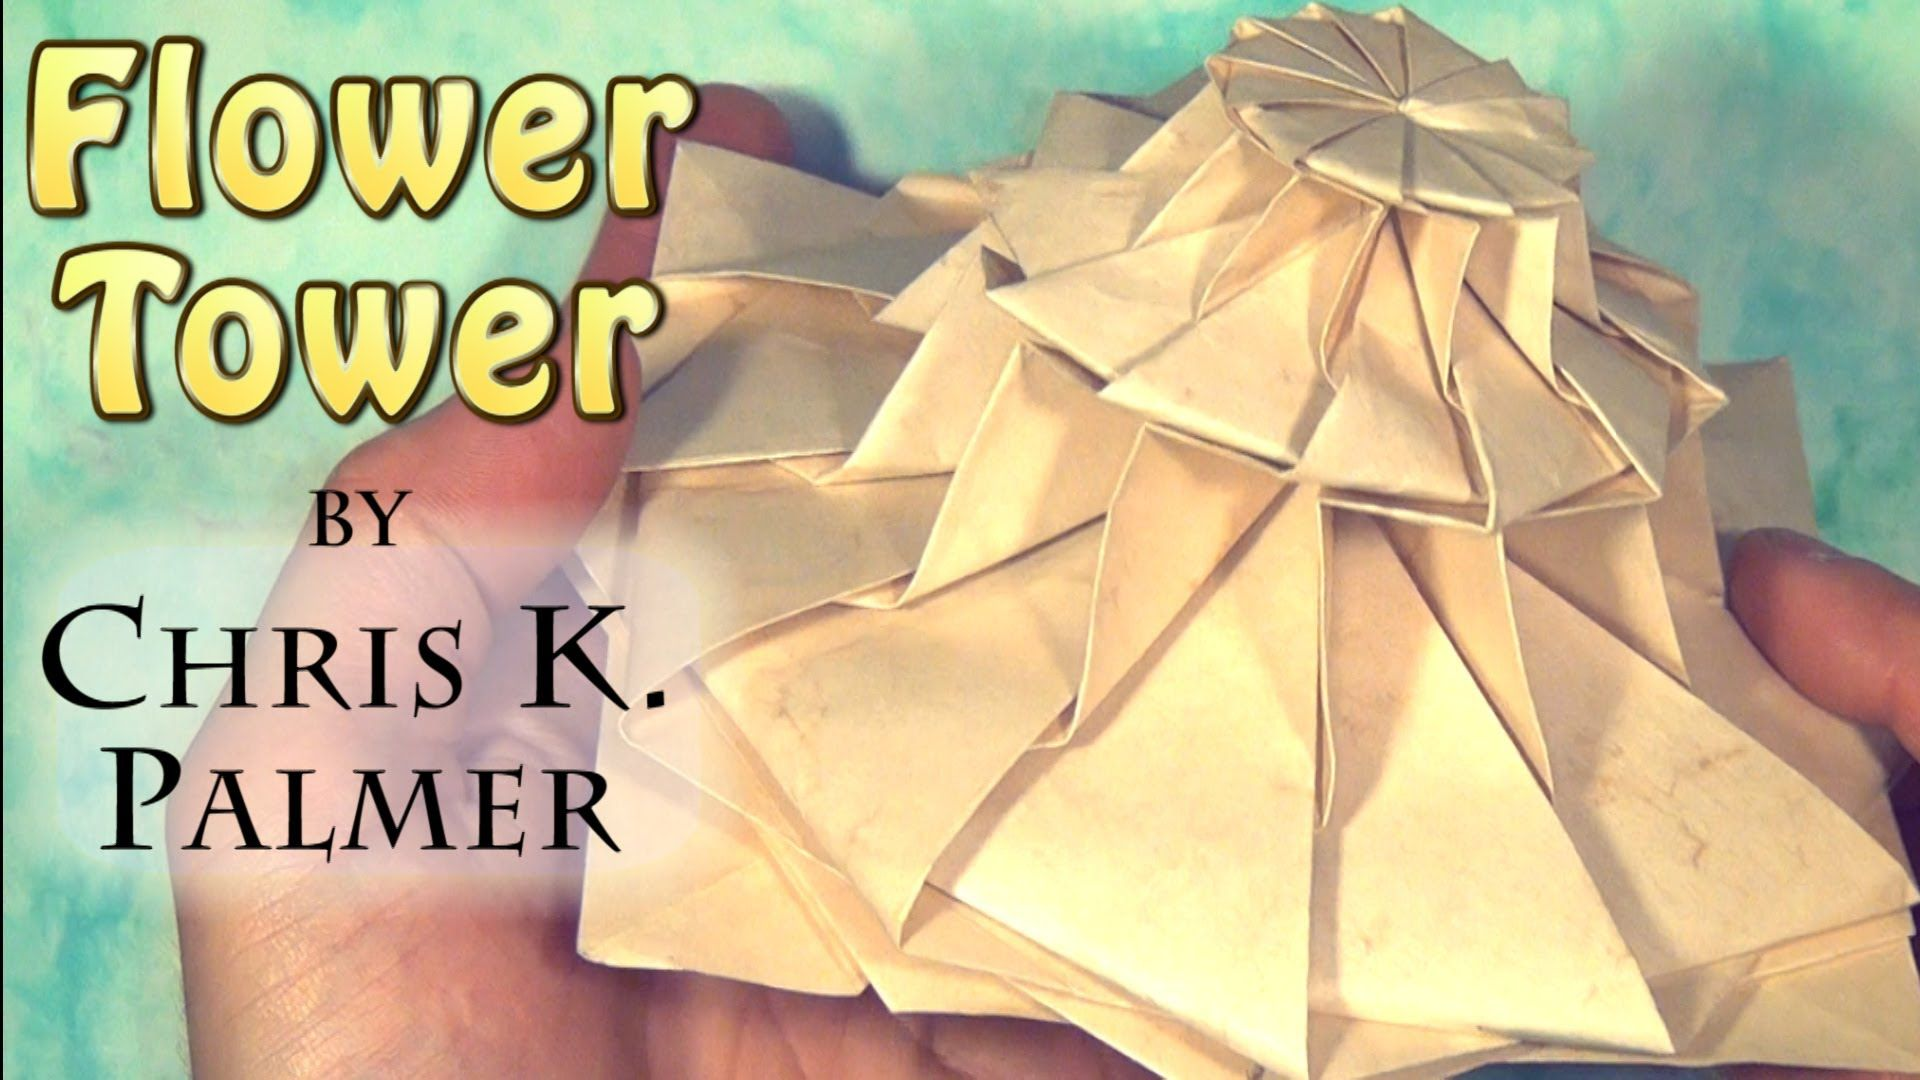 Flower Tower By Chris K Palmer Tutorial Published On Sep 15